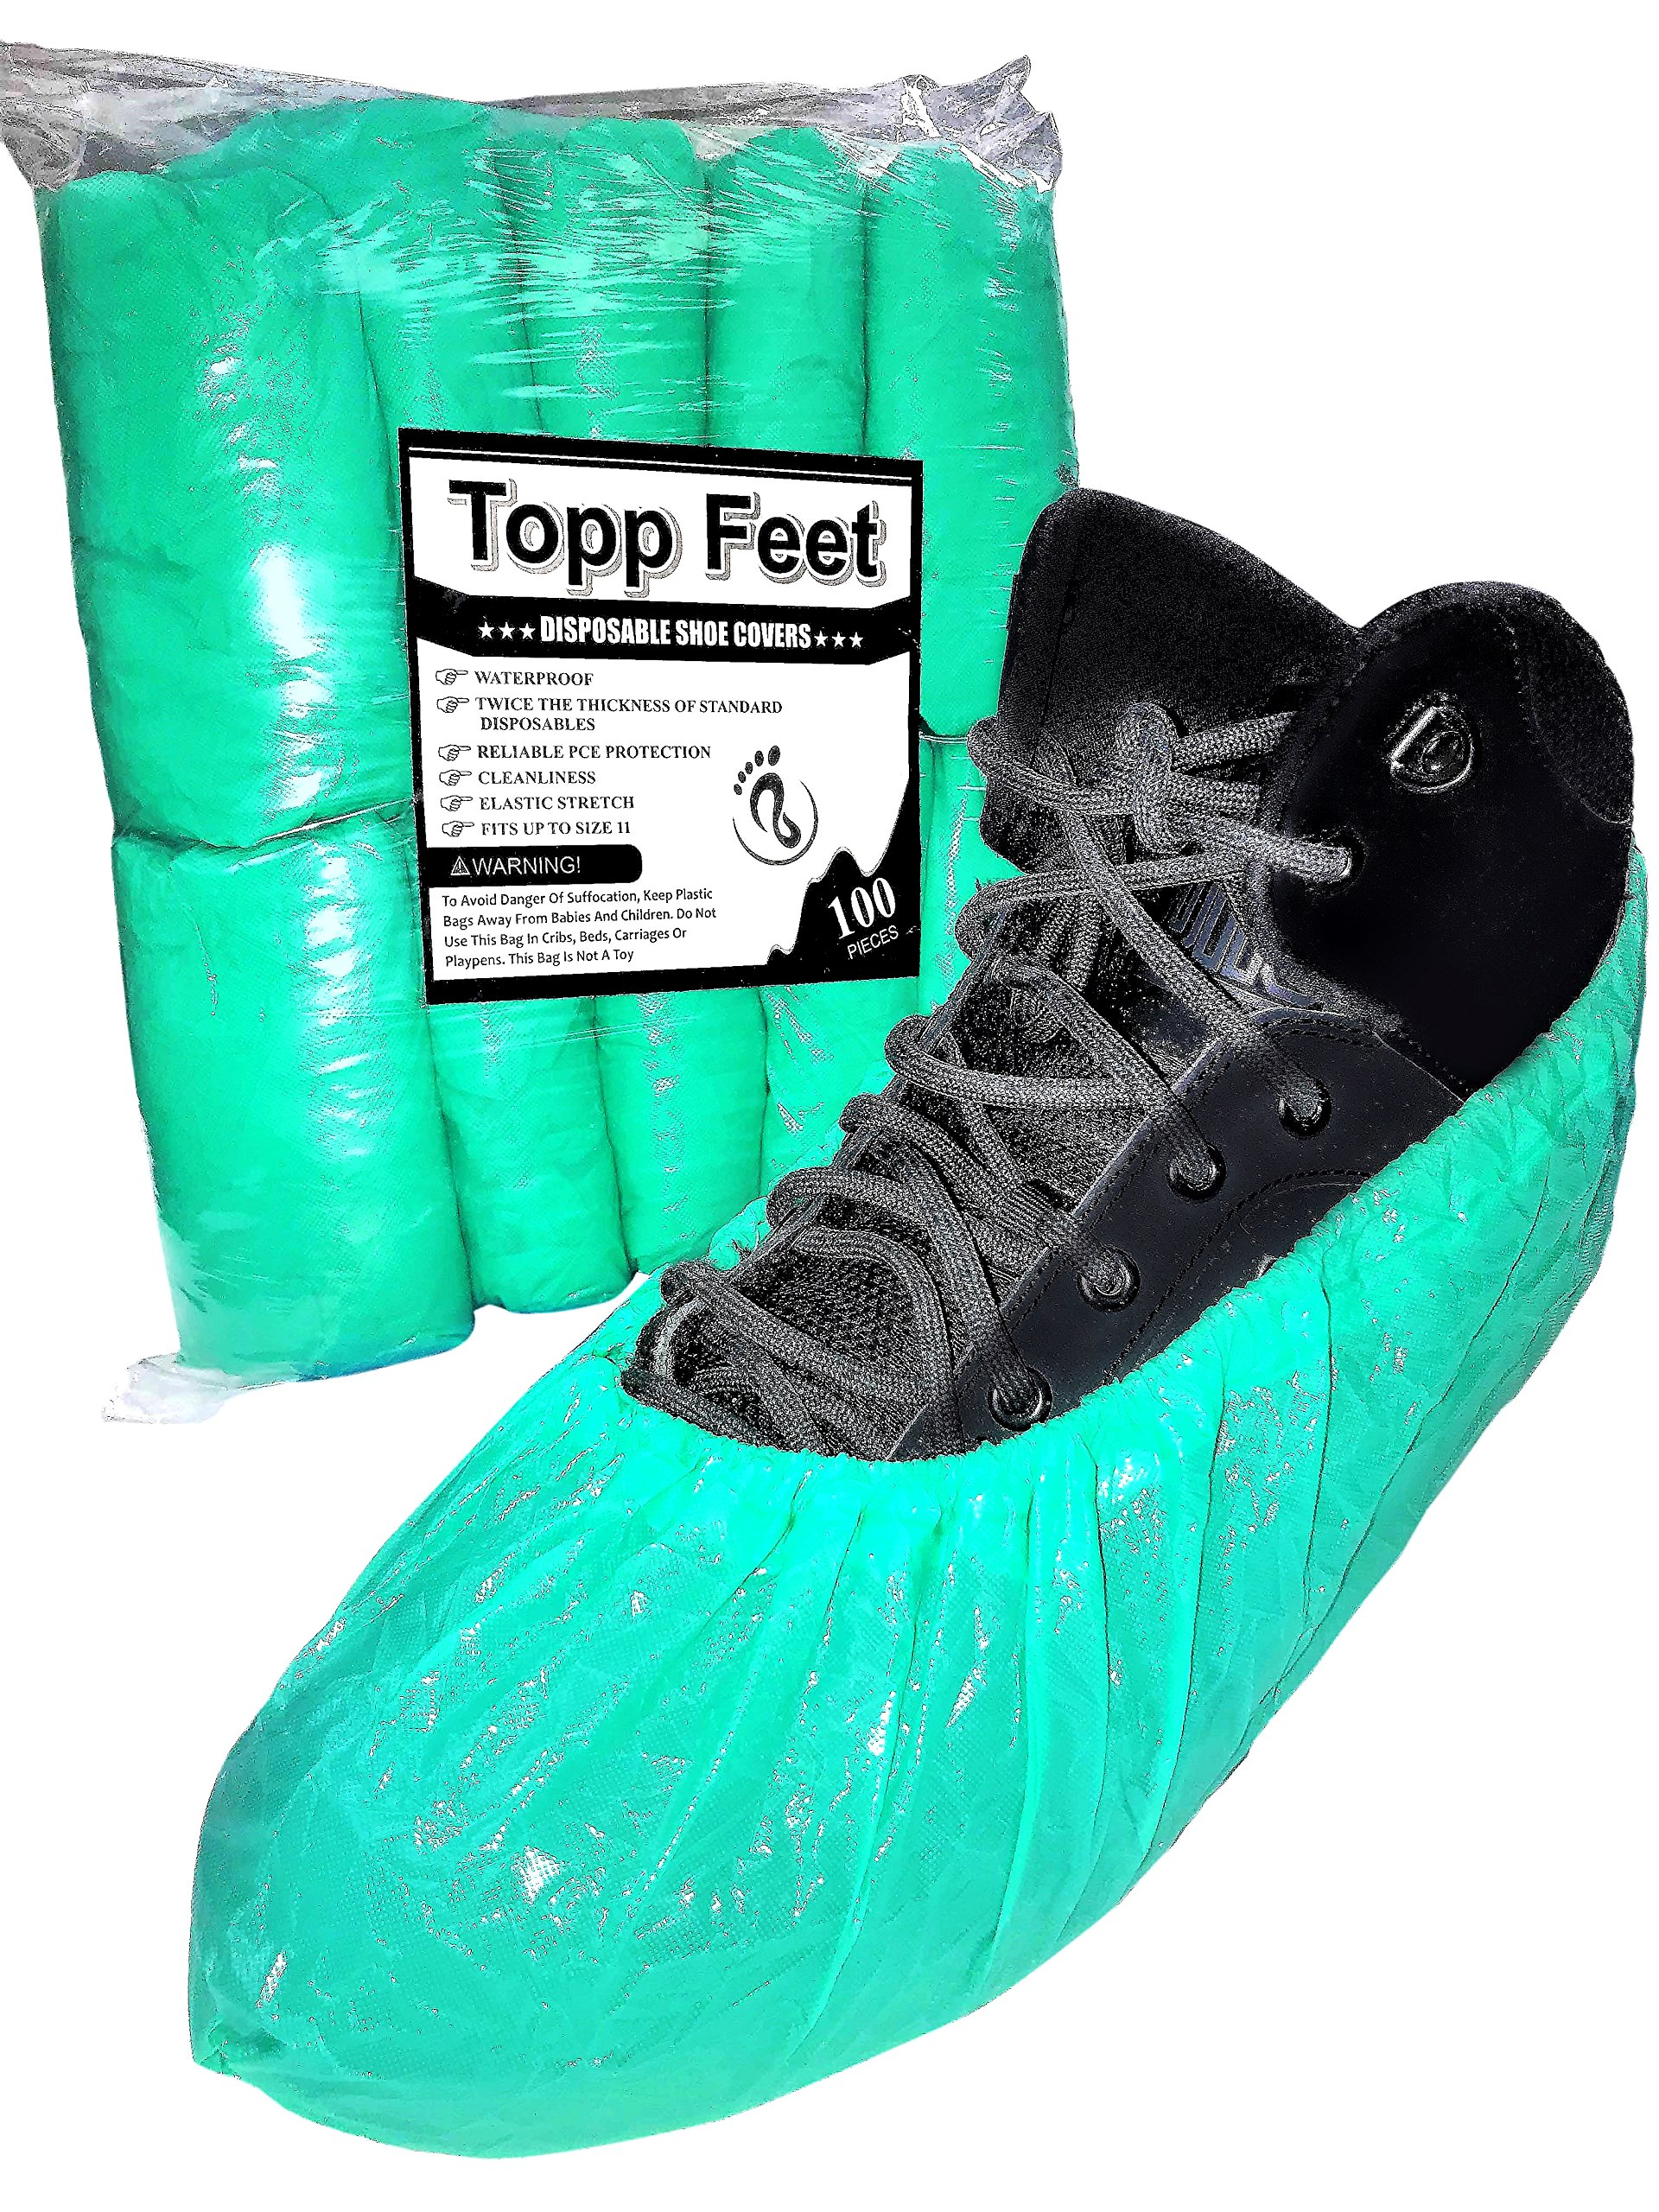 Disposable Shoe Covers By Topp Feet: Extra Thick Waterproof CPE Slip-On To Protect Feet, Shoes And Boots From Rain, Snow And Mud, Non-Slip One Size Fits All With Hand Sewn Elastic Stretch, Pack Of 100